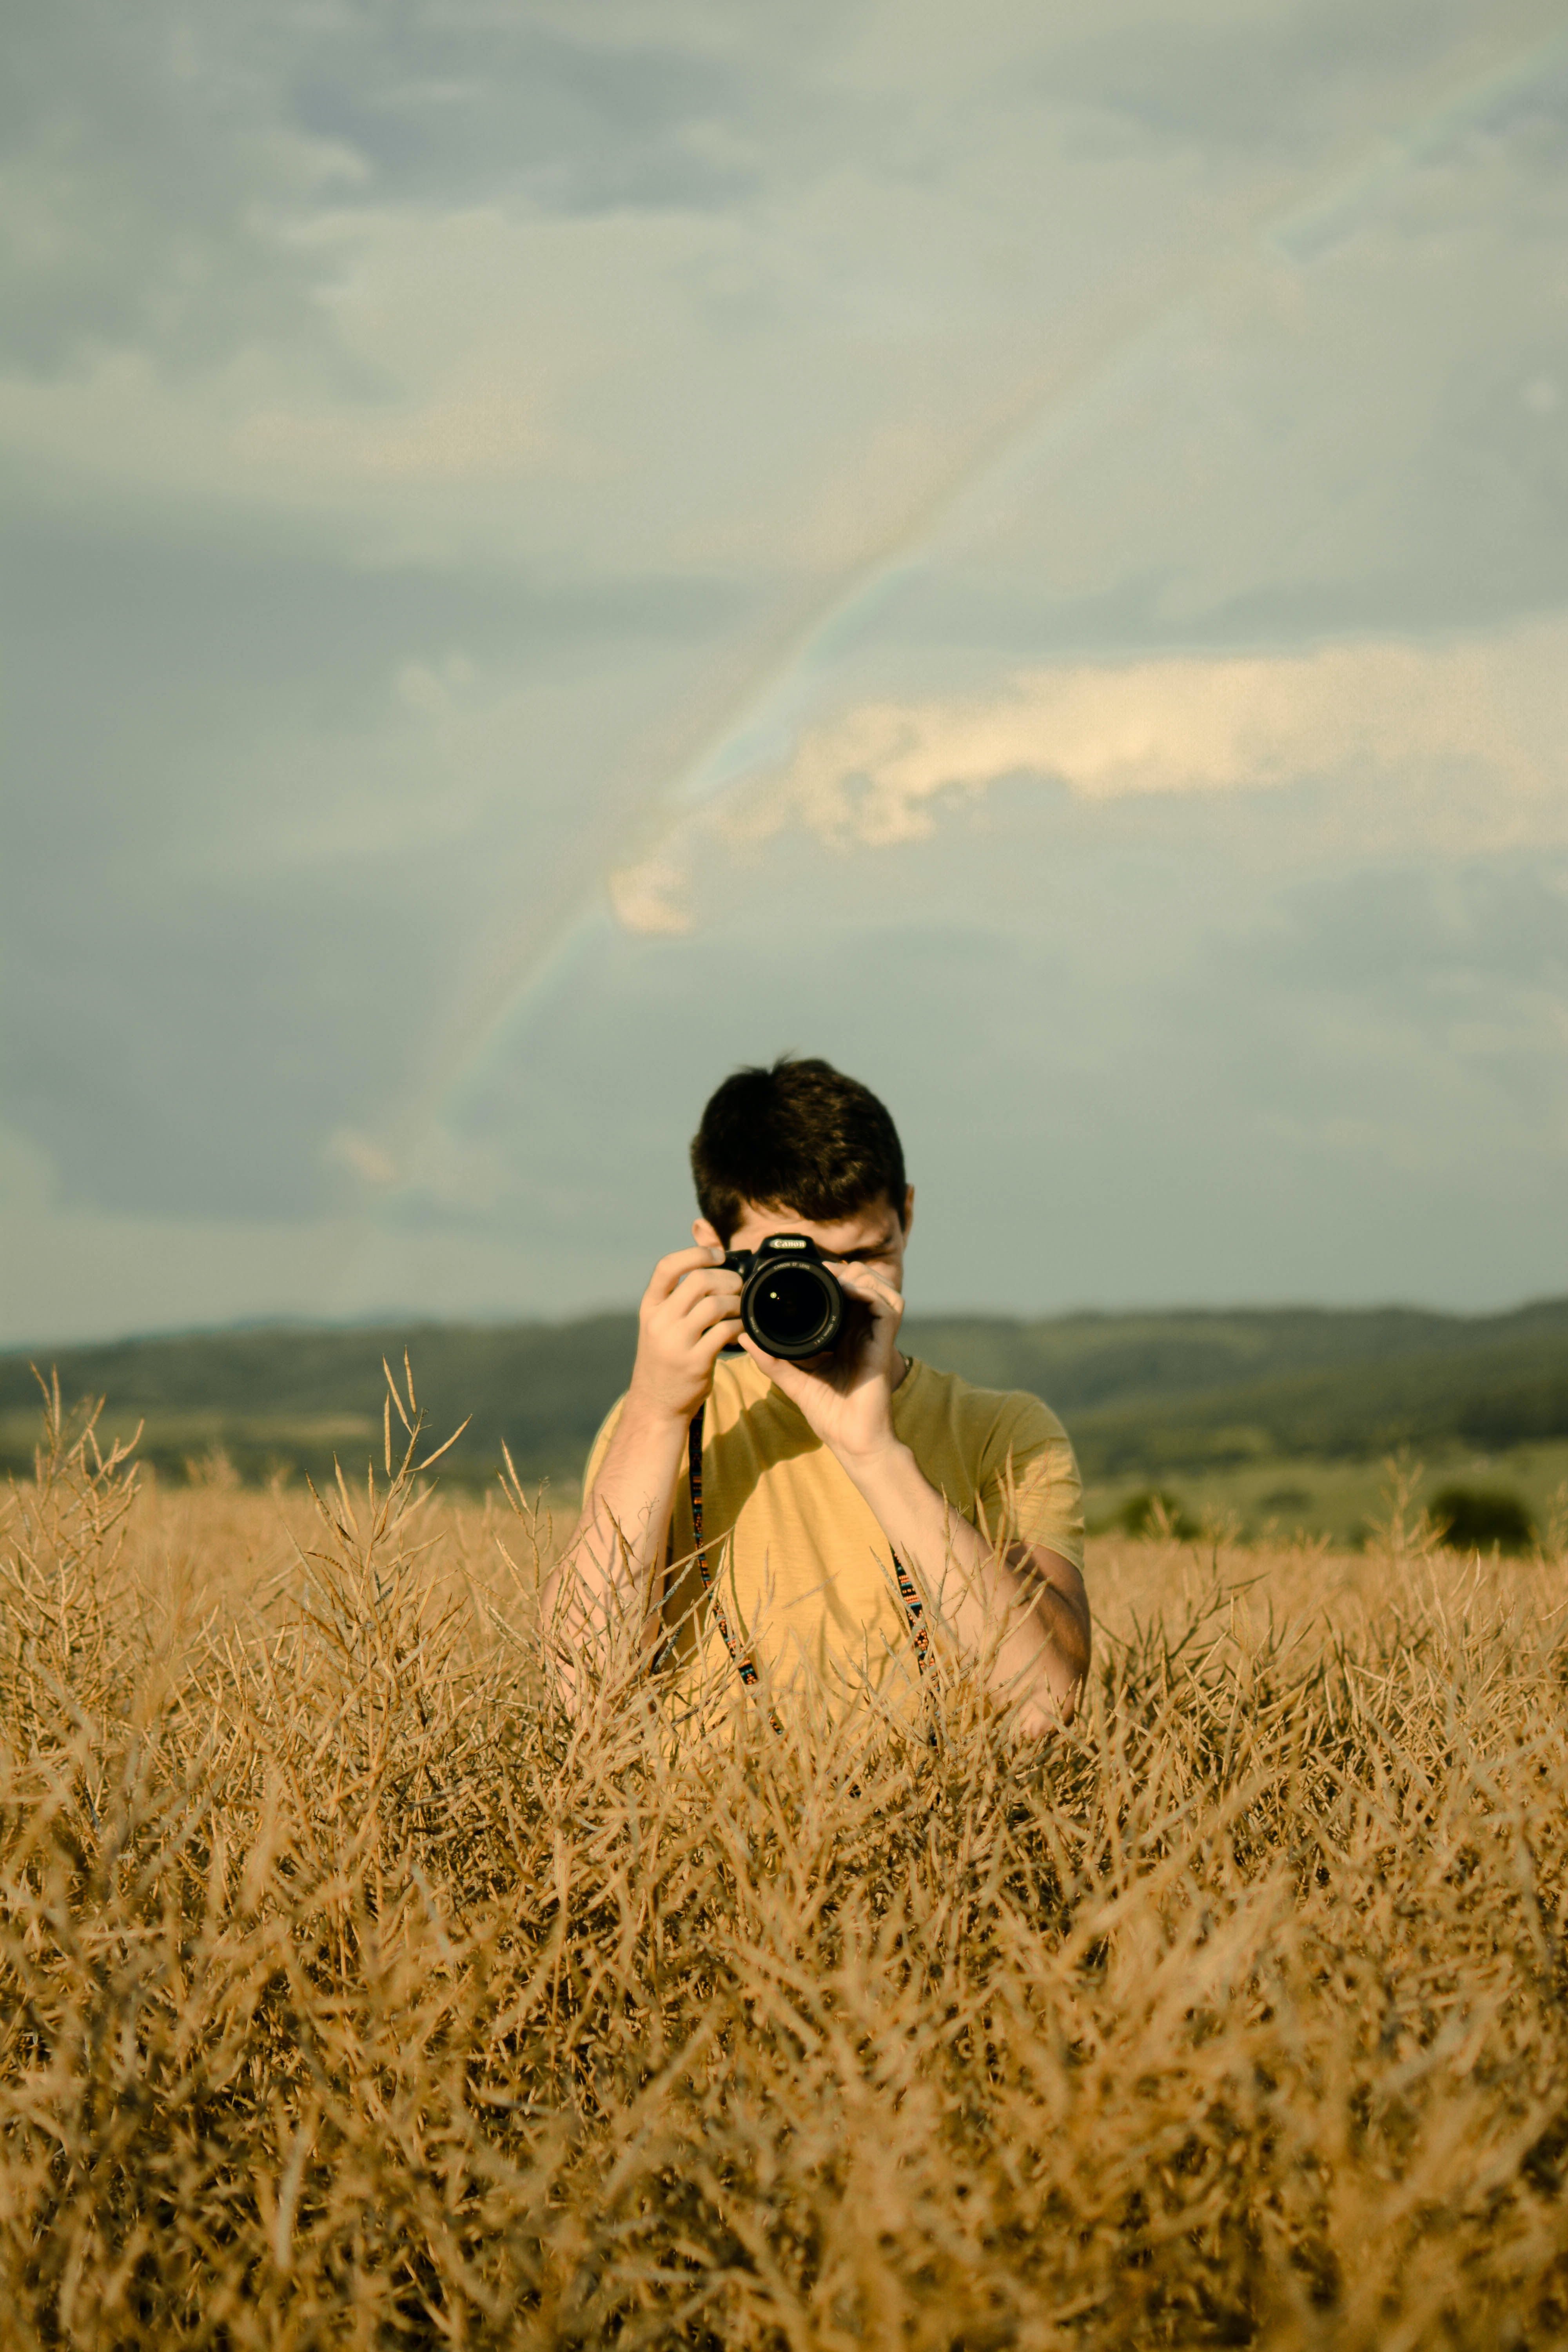 person using DSLR camera in middle of grass field